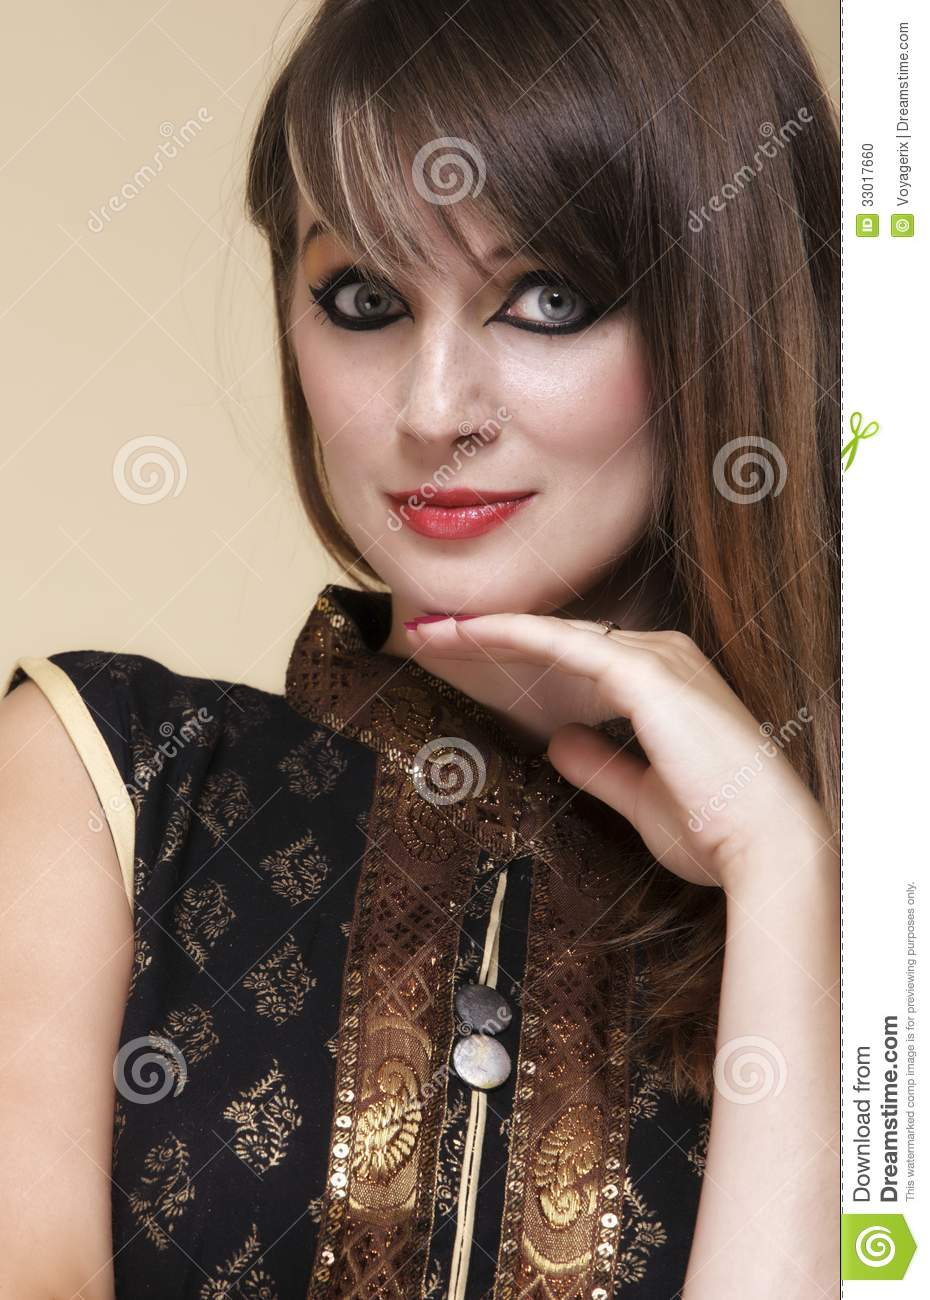 hindu single women in orient Stormfront open forums (open to guests)  general questions and comments: reasons why white american women don't date indian (hindu / sikh) men.